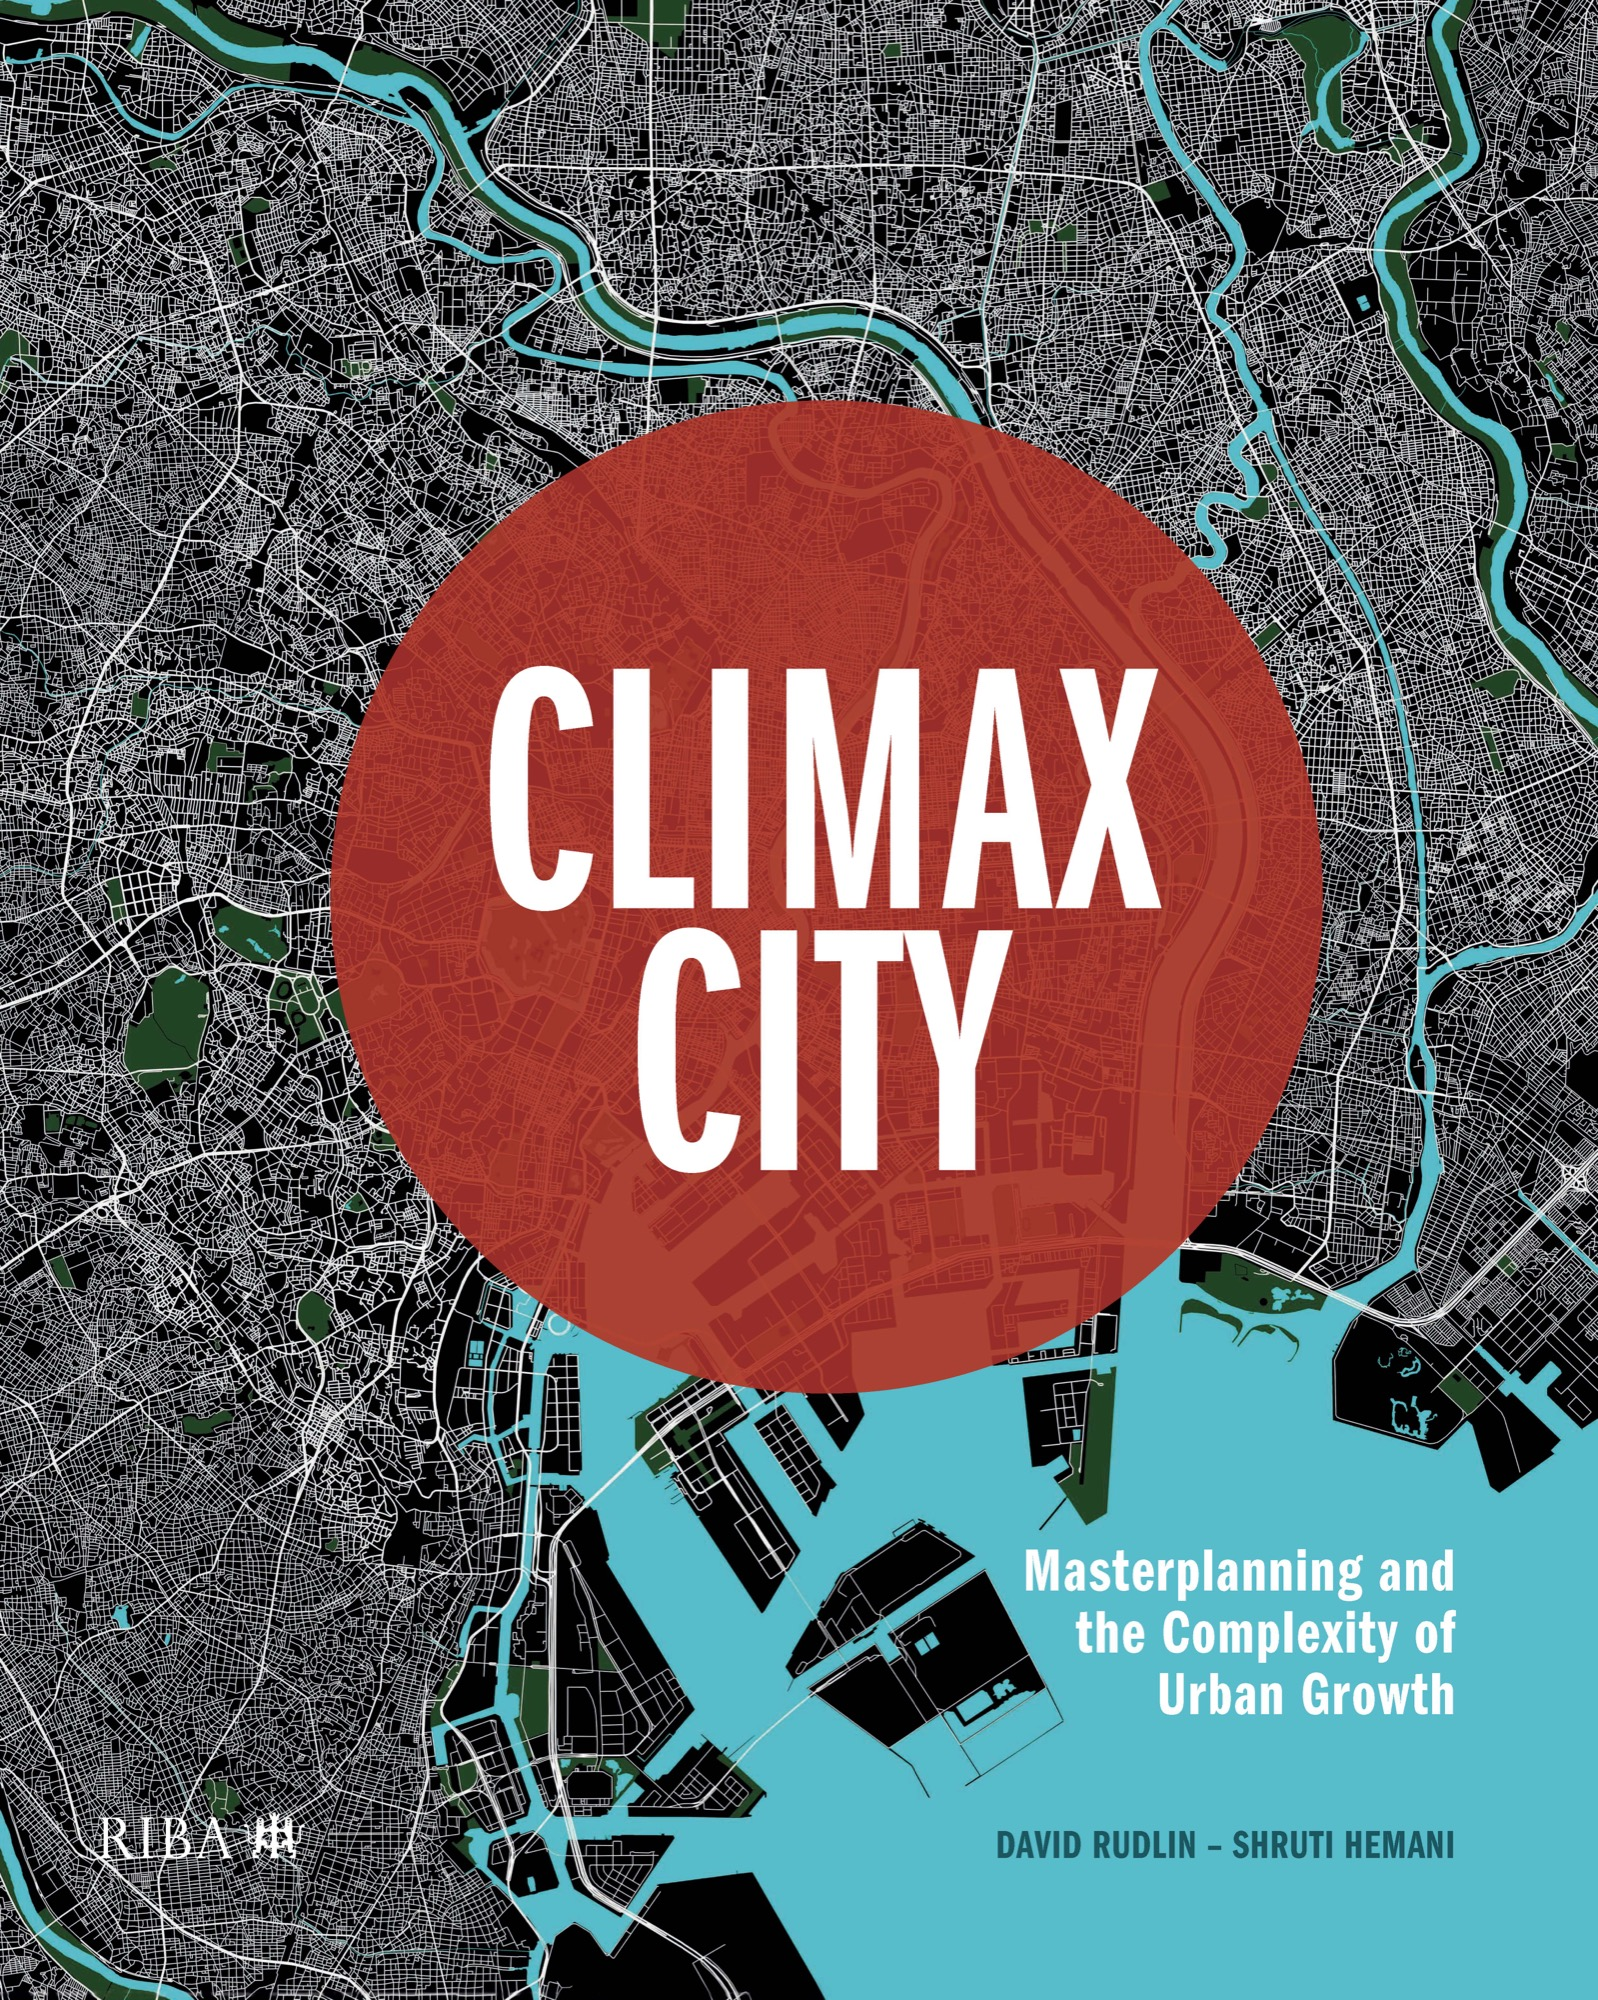 Book: CLIMAX CITY - Masterplanning and the Complexity of Urban Growth, authored by David Rudlin and Shruti Hemani 1